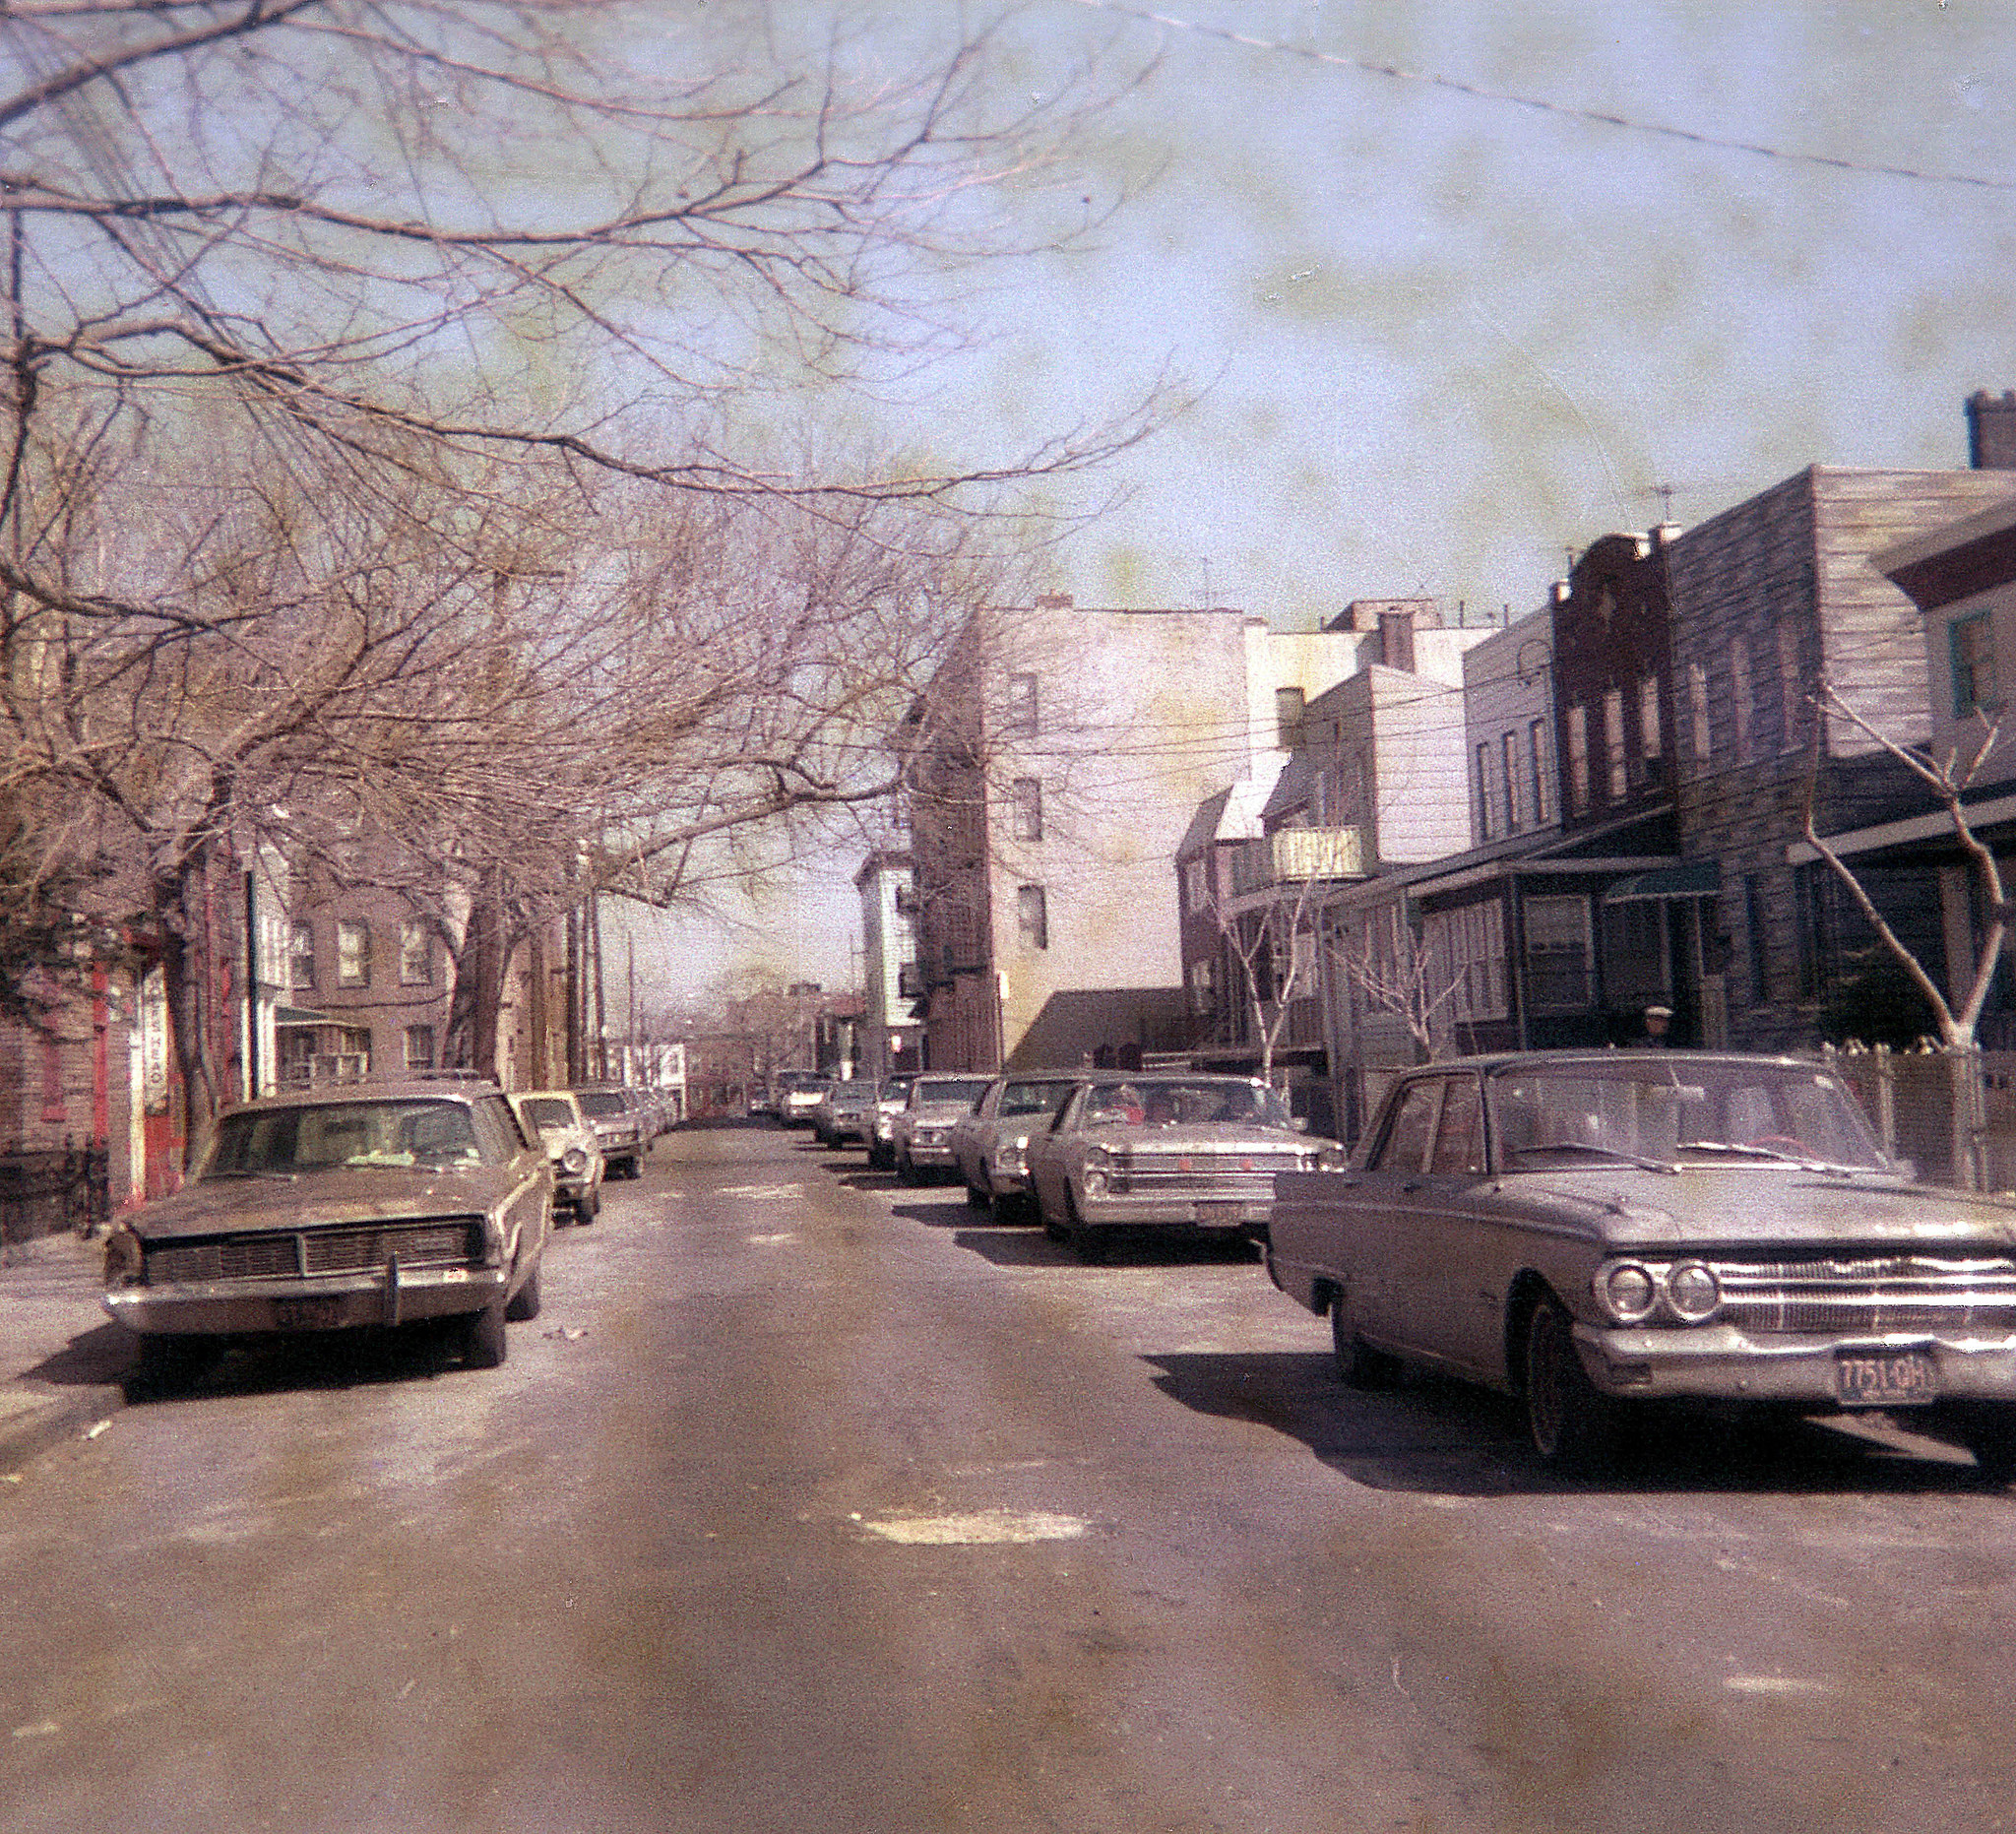 Cheap Triple Print 126 film showing battered 1960s cars in the East New York neighborhood of Brooklyn on McKinley Avenue. March 1972